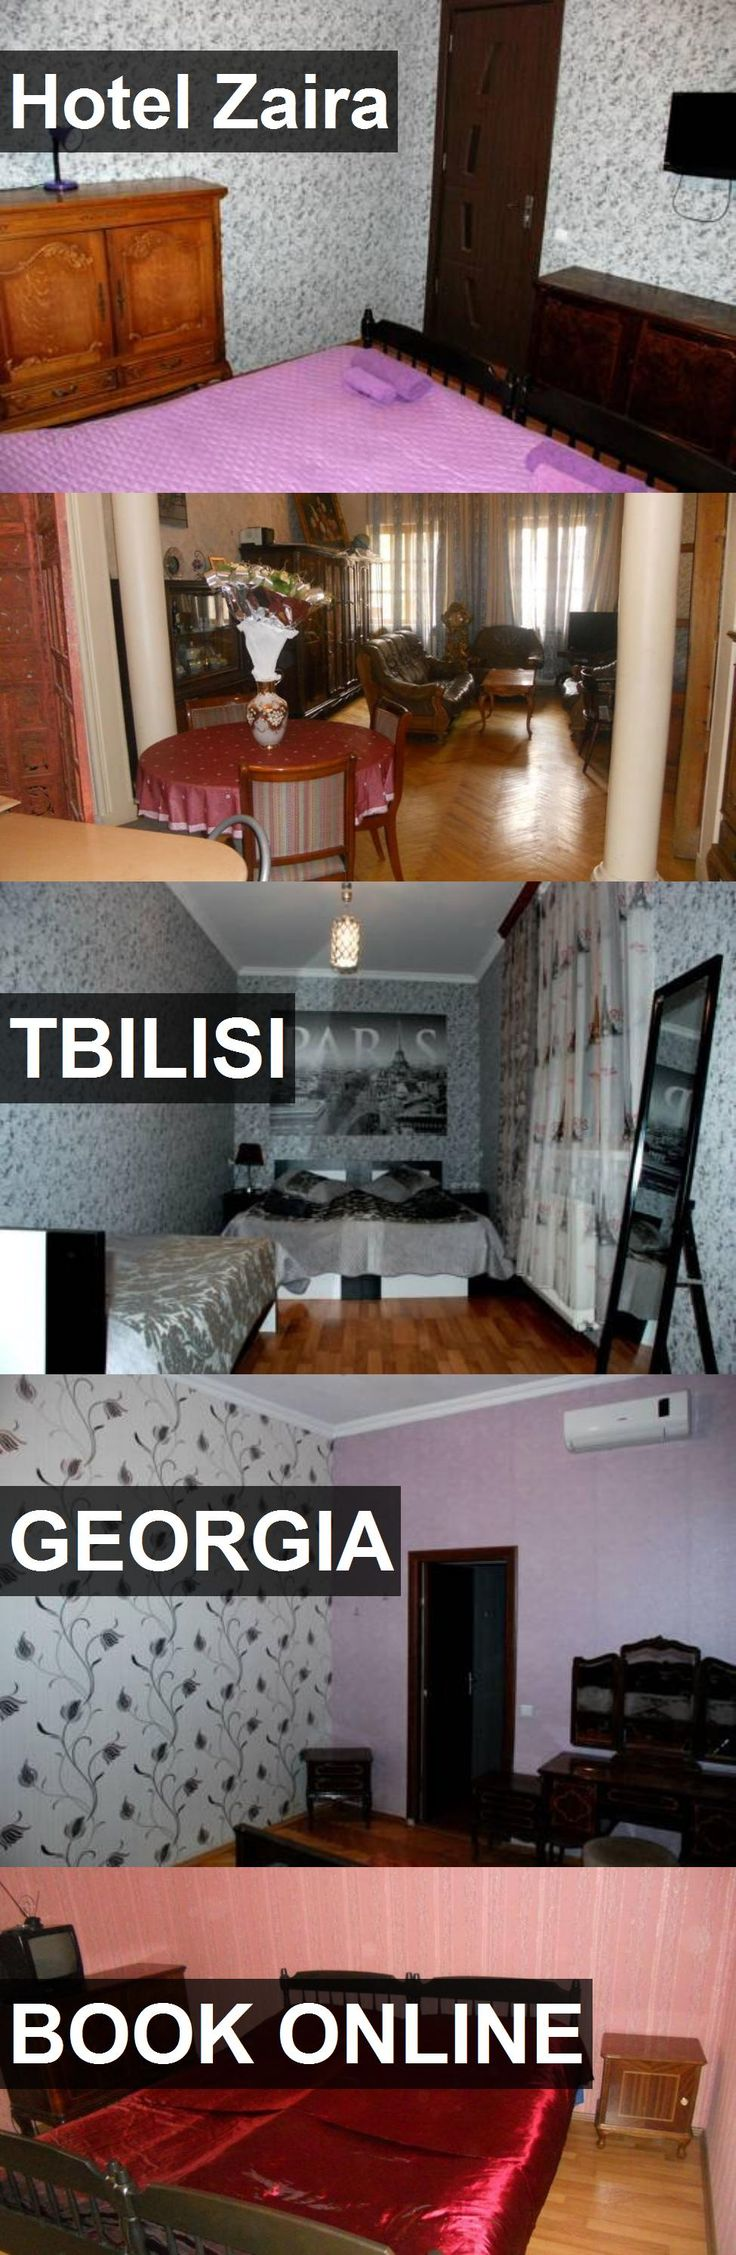 Hotel Hotel Zaira in Tbilisi, Georgia. For more information, photos, reviews and best prices please follow the link. #Georgia #Tbilisi #HotelZaira #hotel #travel #vacation